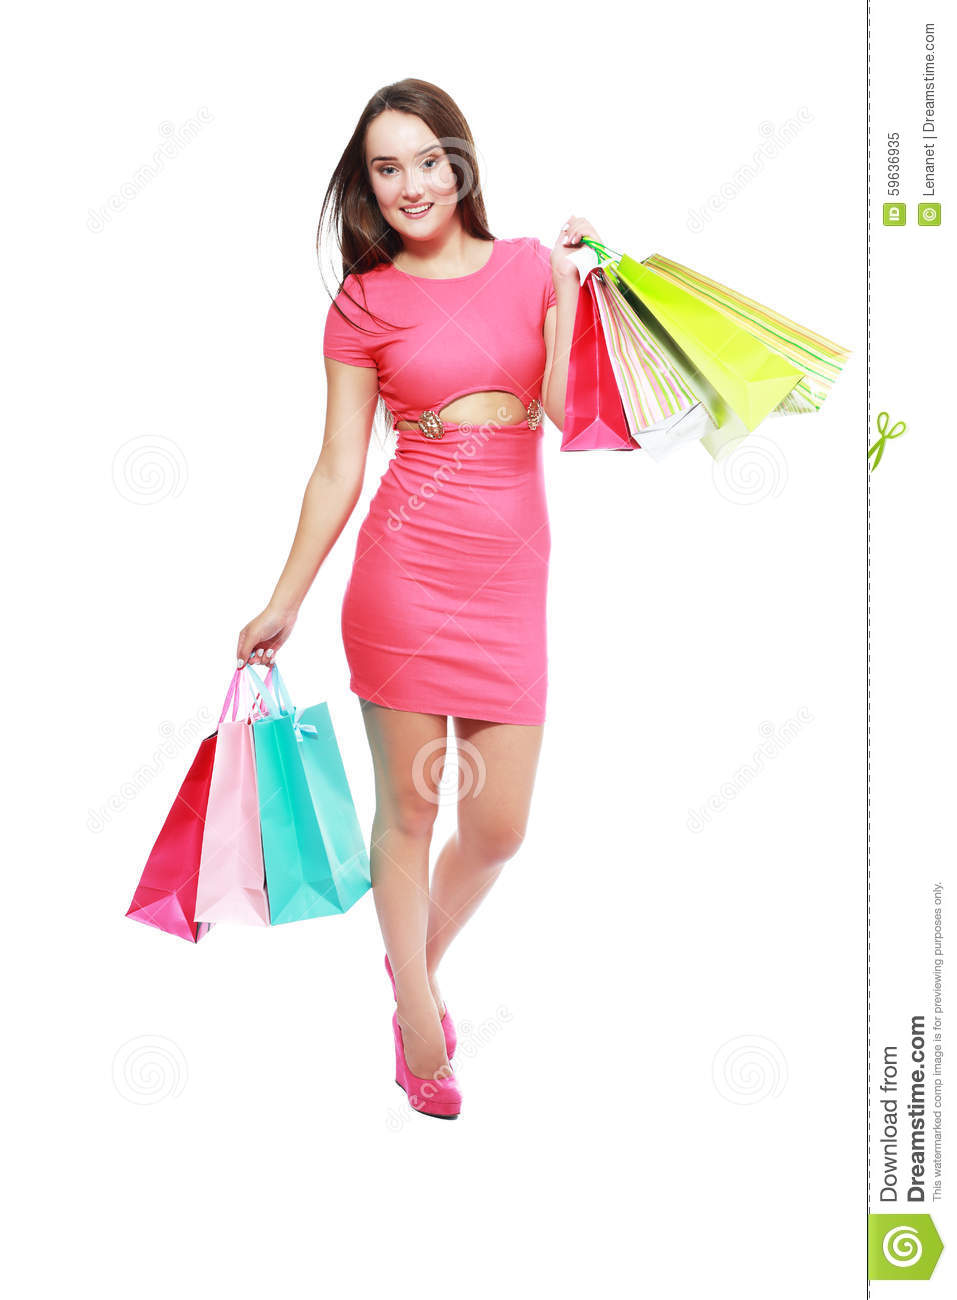 Model Young Woman Holding Christmas Gift Bags Royalty Free Stock Photos - Image 22372678